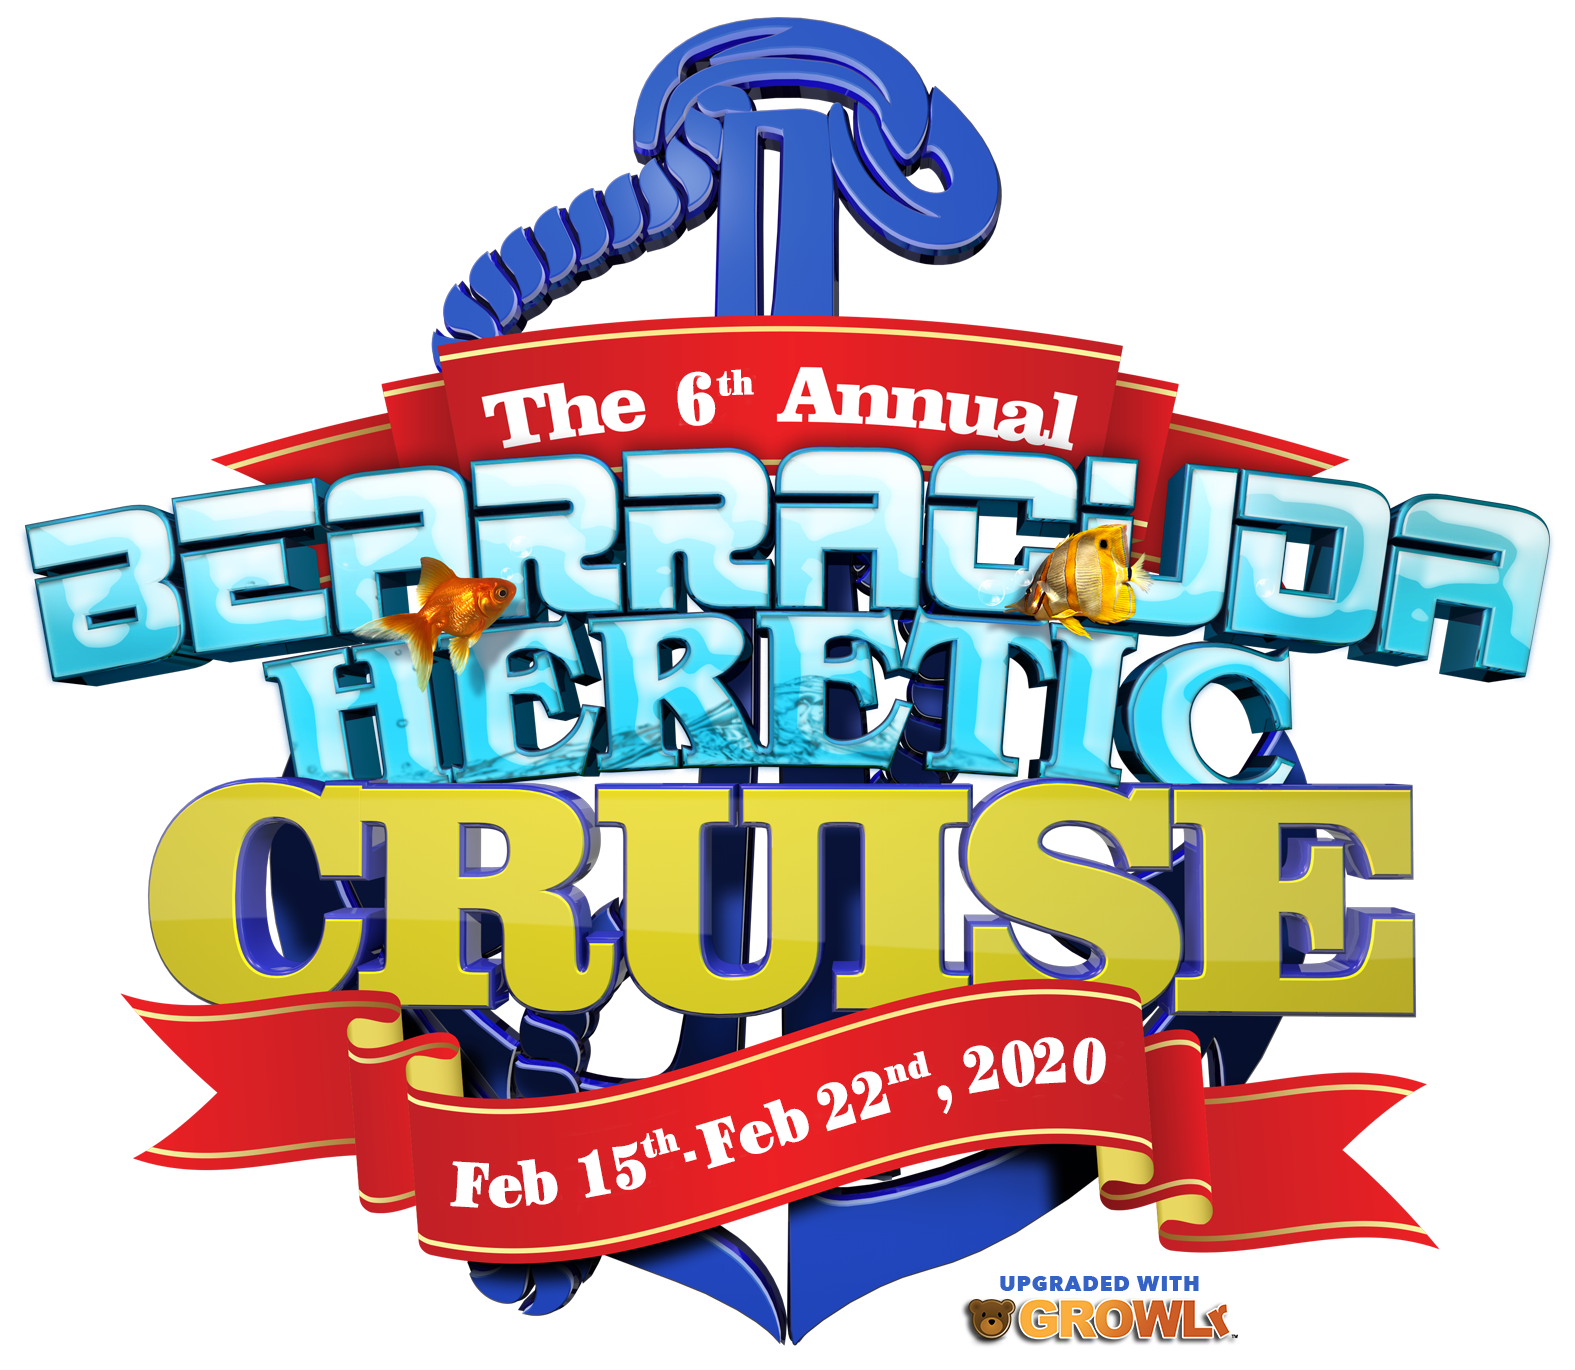 (The Bearracuda Heretic Cruise - Feb 15th - Feb 22nd, 2020)